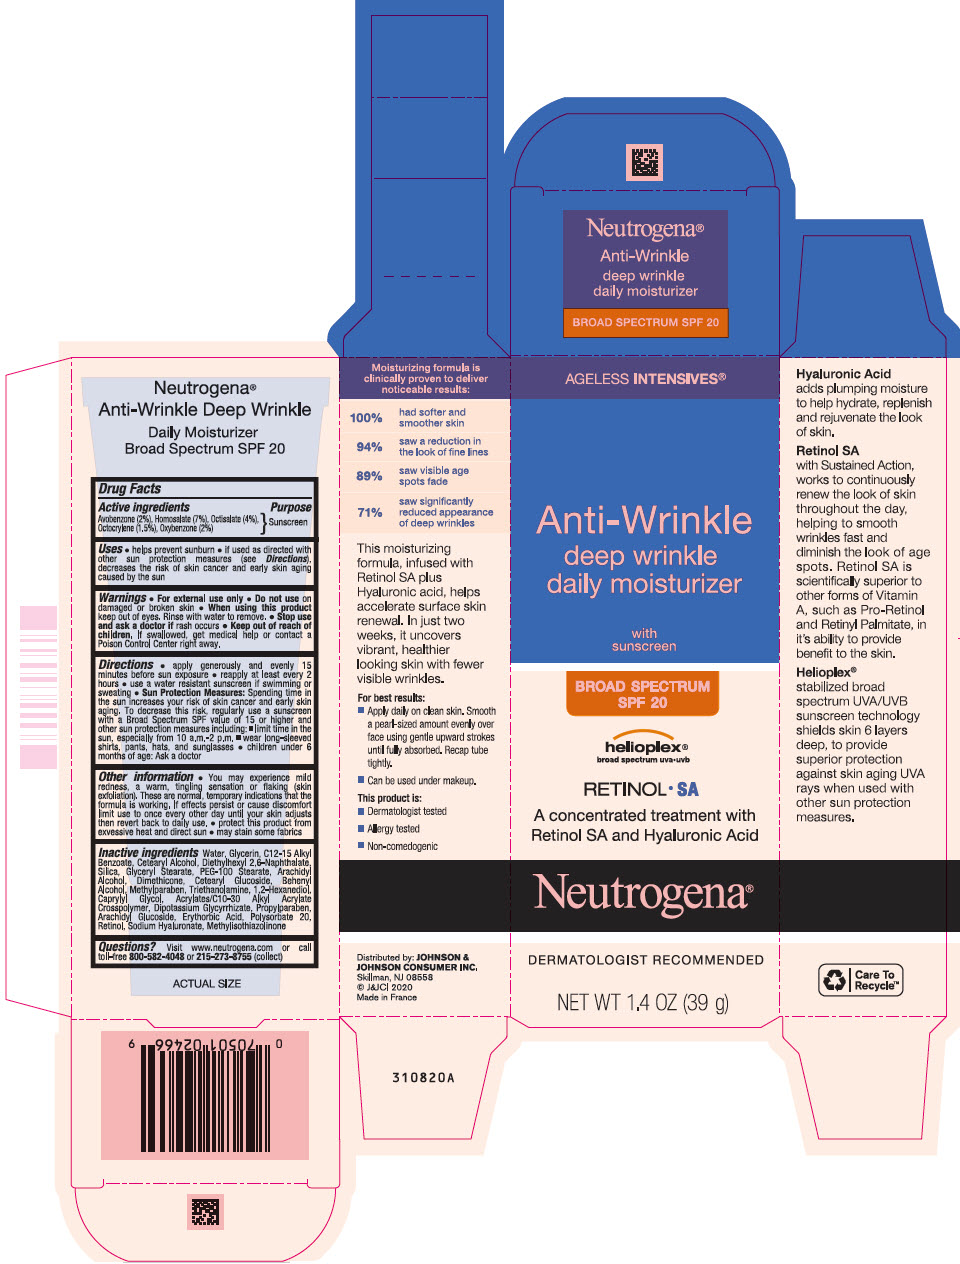 Avobenzone, Homosalate, Octisalate, Octocrylene, and Oxybenzone - Sunscreen Broad Spectrum SPF20 (Neutrogena Ageless Intensives Anti Wrinkle Deep Wrinkle Daily Moisturizer)